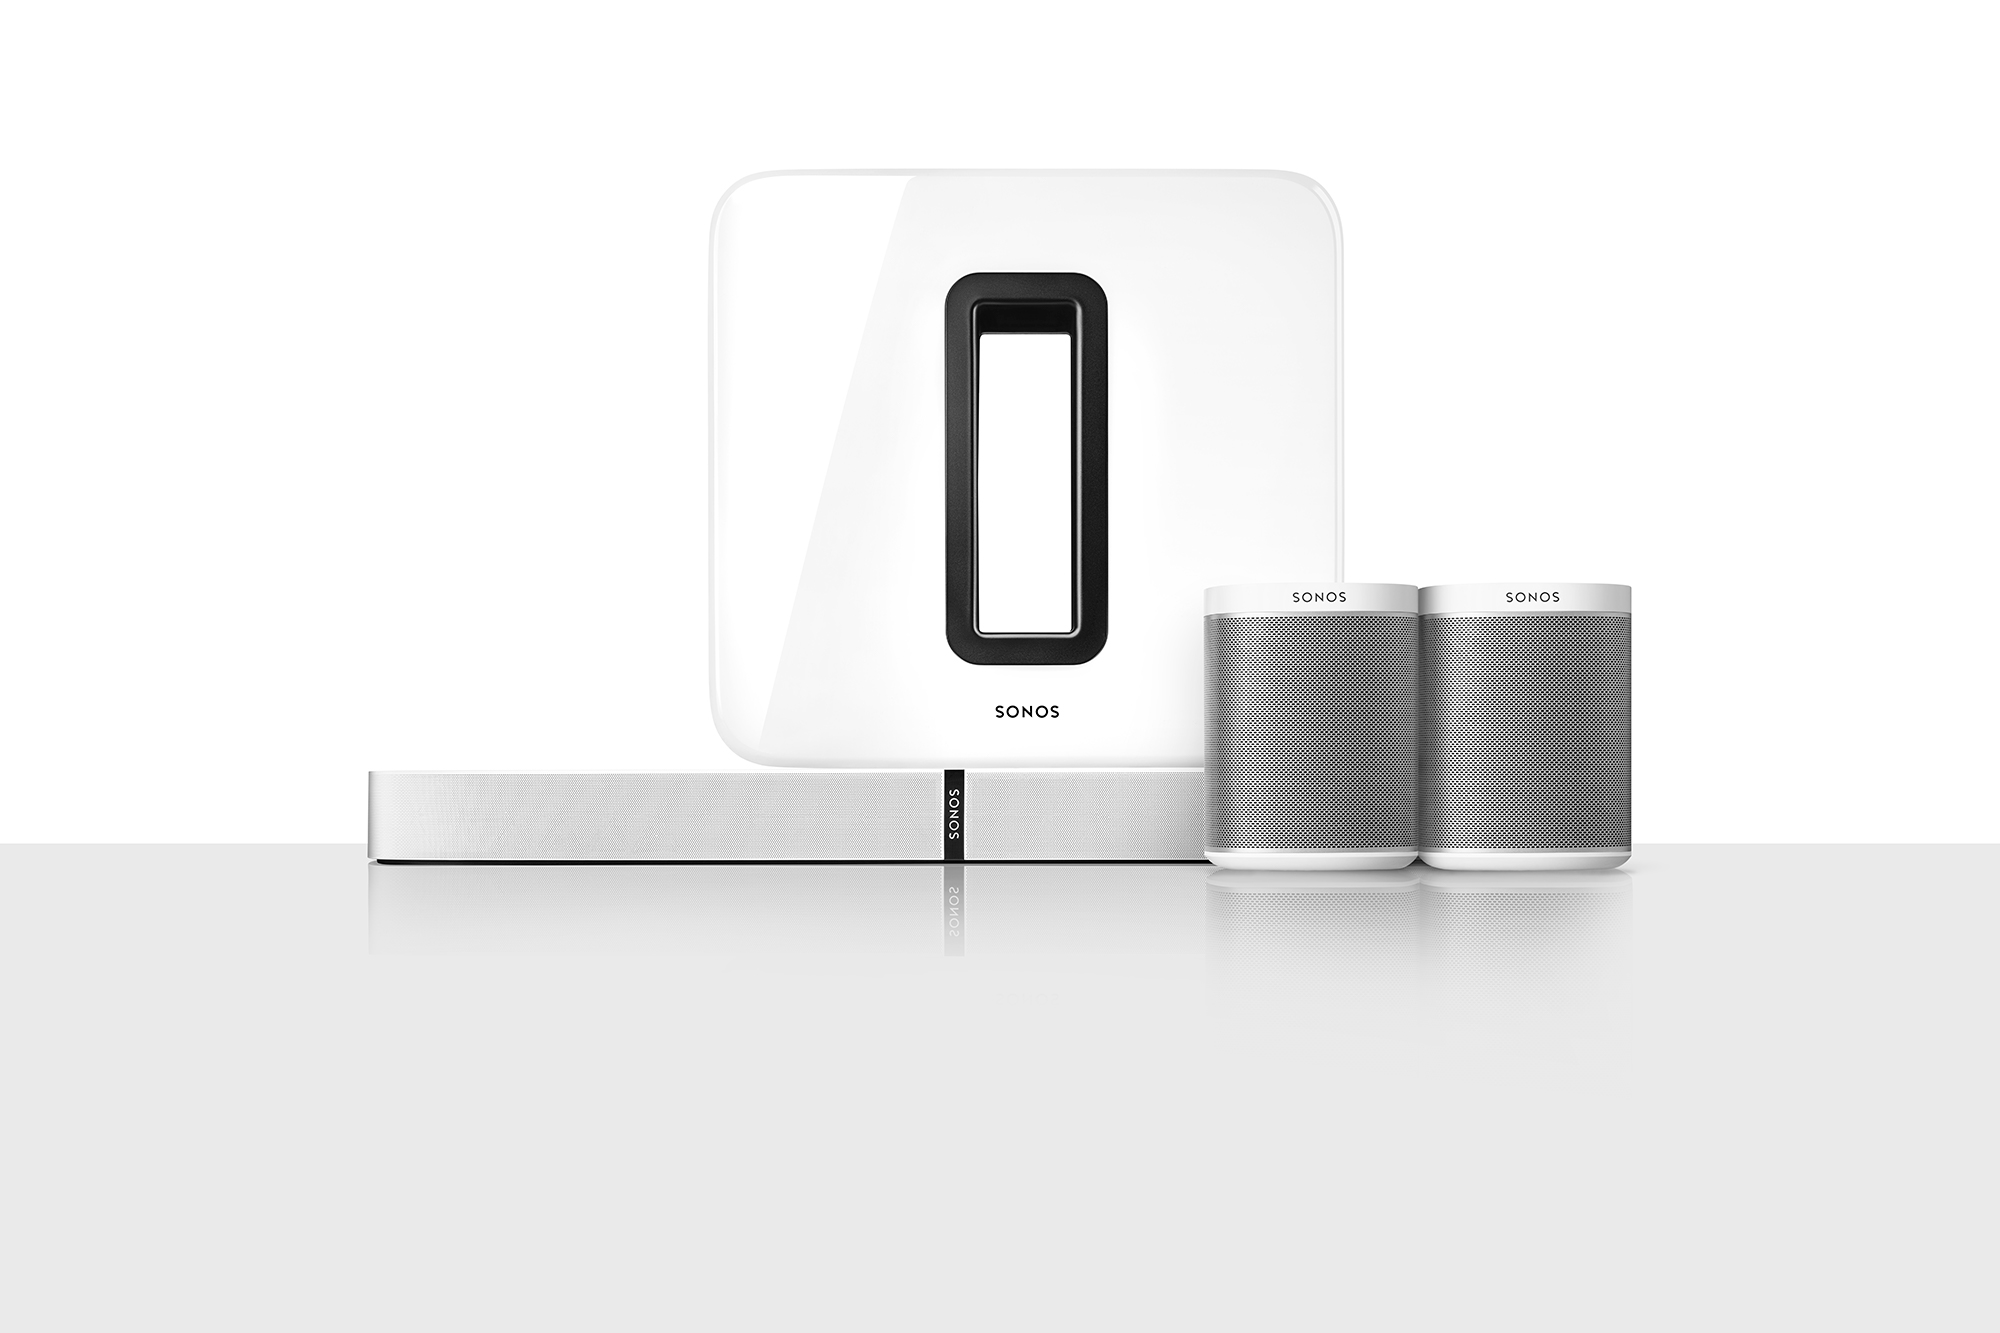 238610 Sonos PLAYBASE HomeTheater White ac0d07 original 1488839395 COMMENT: Why Sonos Is Yesterdays Sound Technology